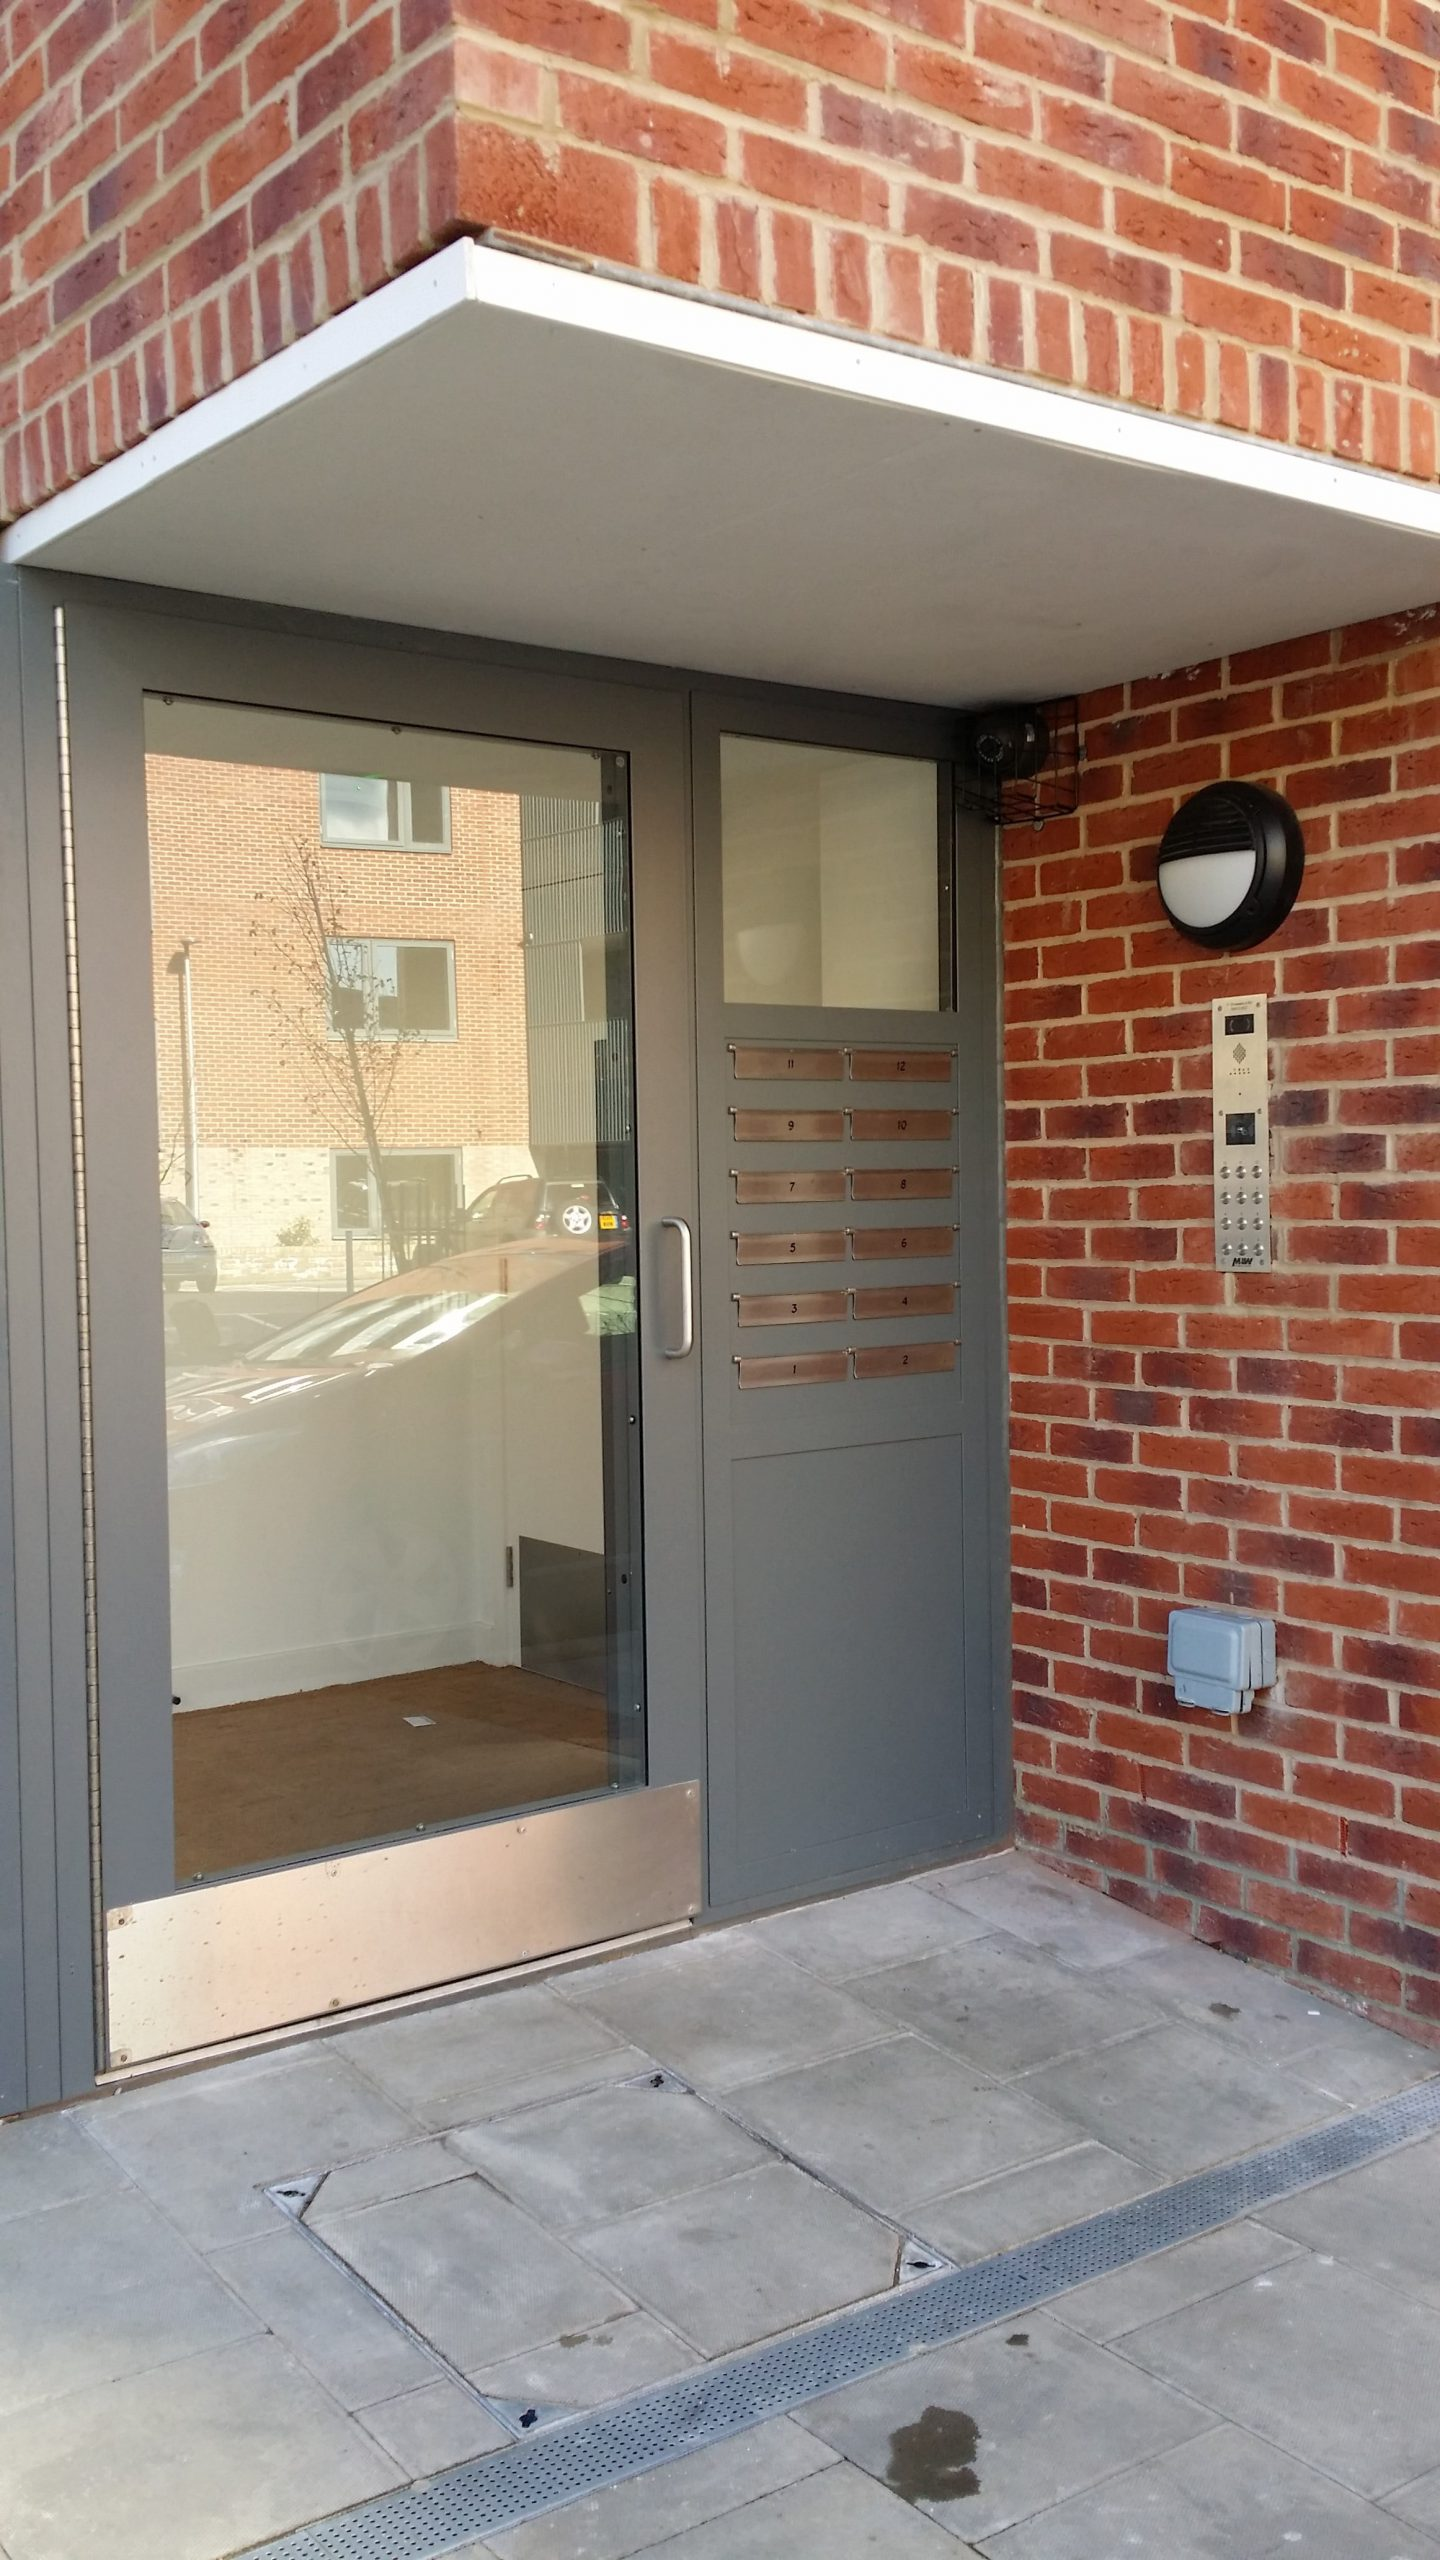 INTEGRATED COMMUNAL STEEL SECURITY MAILBOX SYSTEM WITH SECURED BY DESIGN CERTIFICATION.